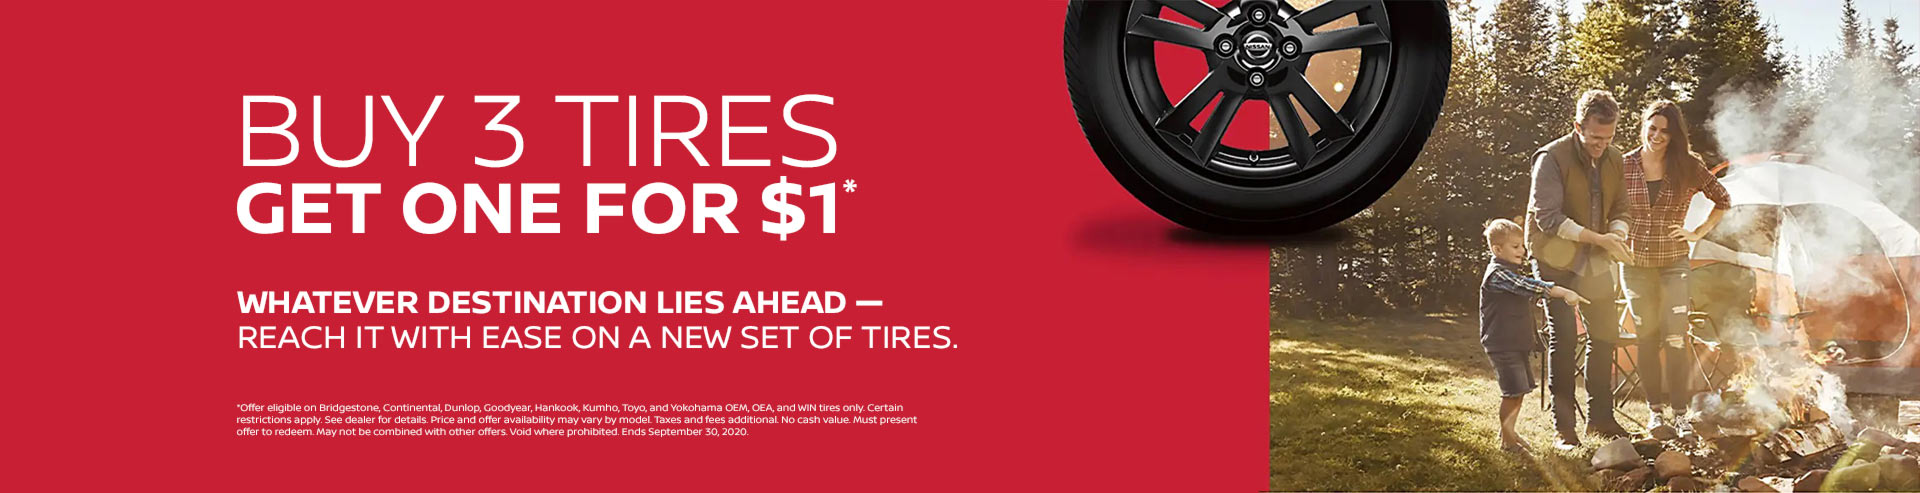 GilroyNissan-Banner-Buy3Tires-1920x493-REVISED.jpg